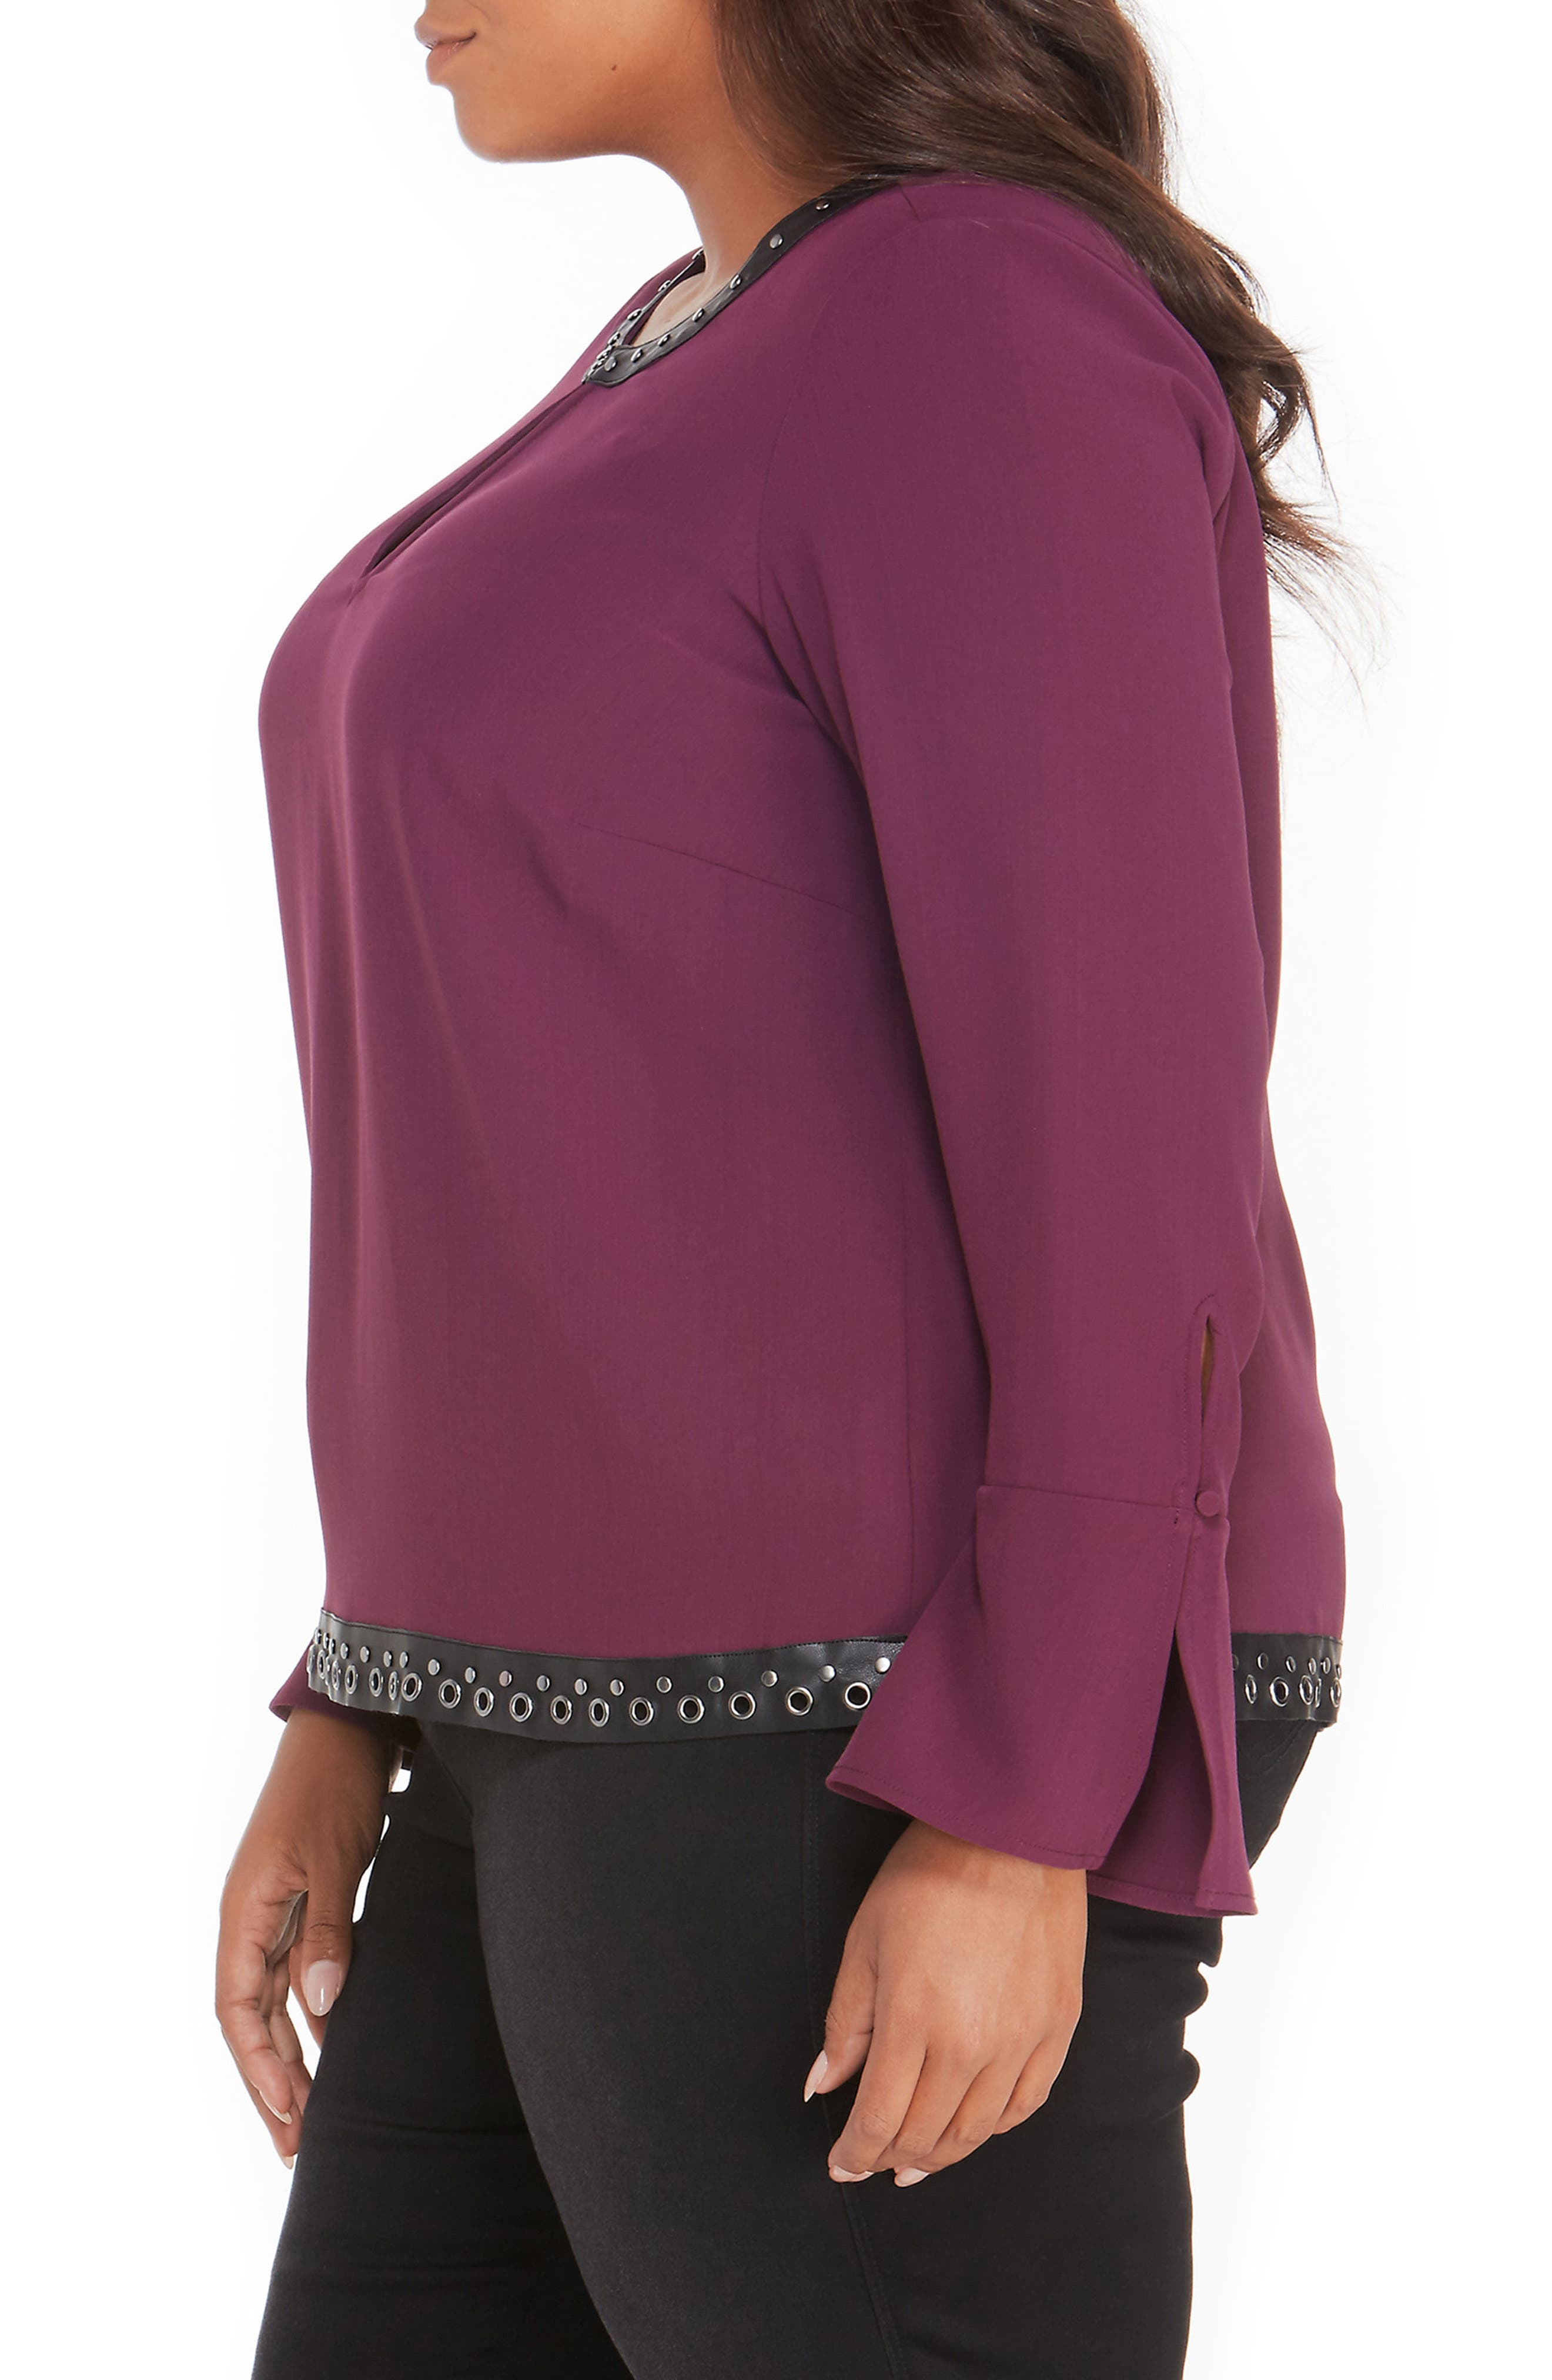 Alternate Image 3  - Rebel Wilson x Angels Studded Faux Leather Trim Top (Plus Size)